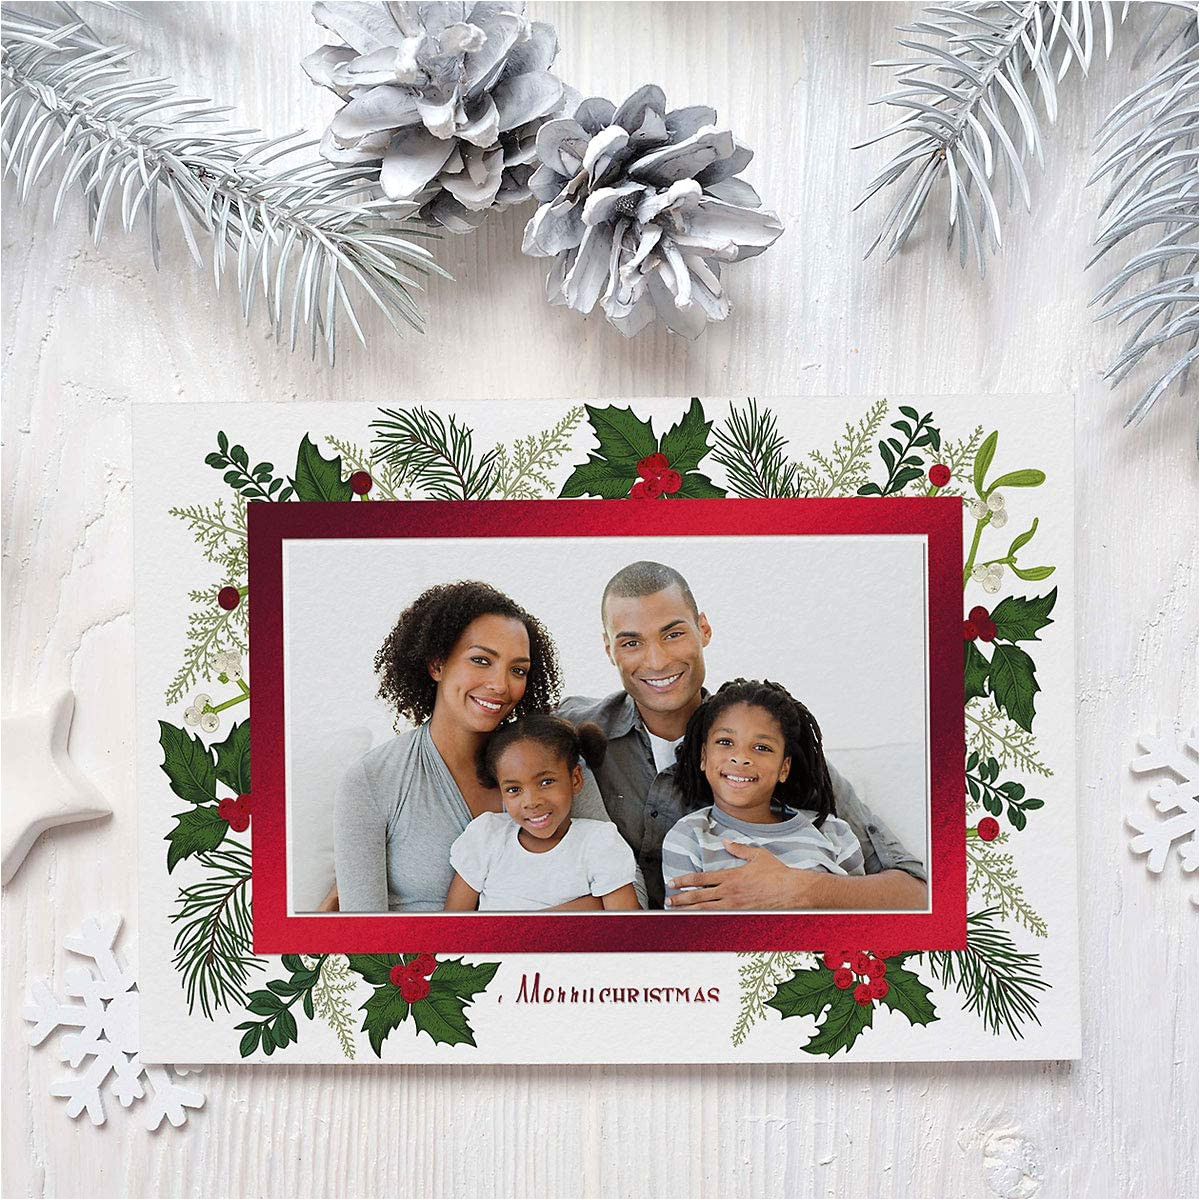 Christmas Card Inserts 6 X 6 Deluxe Christmas Card Holly Photo Frames Red Foil Set Of